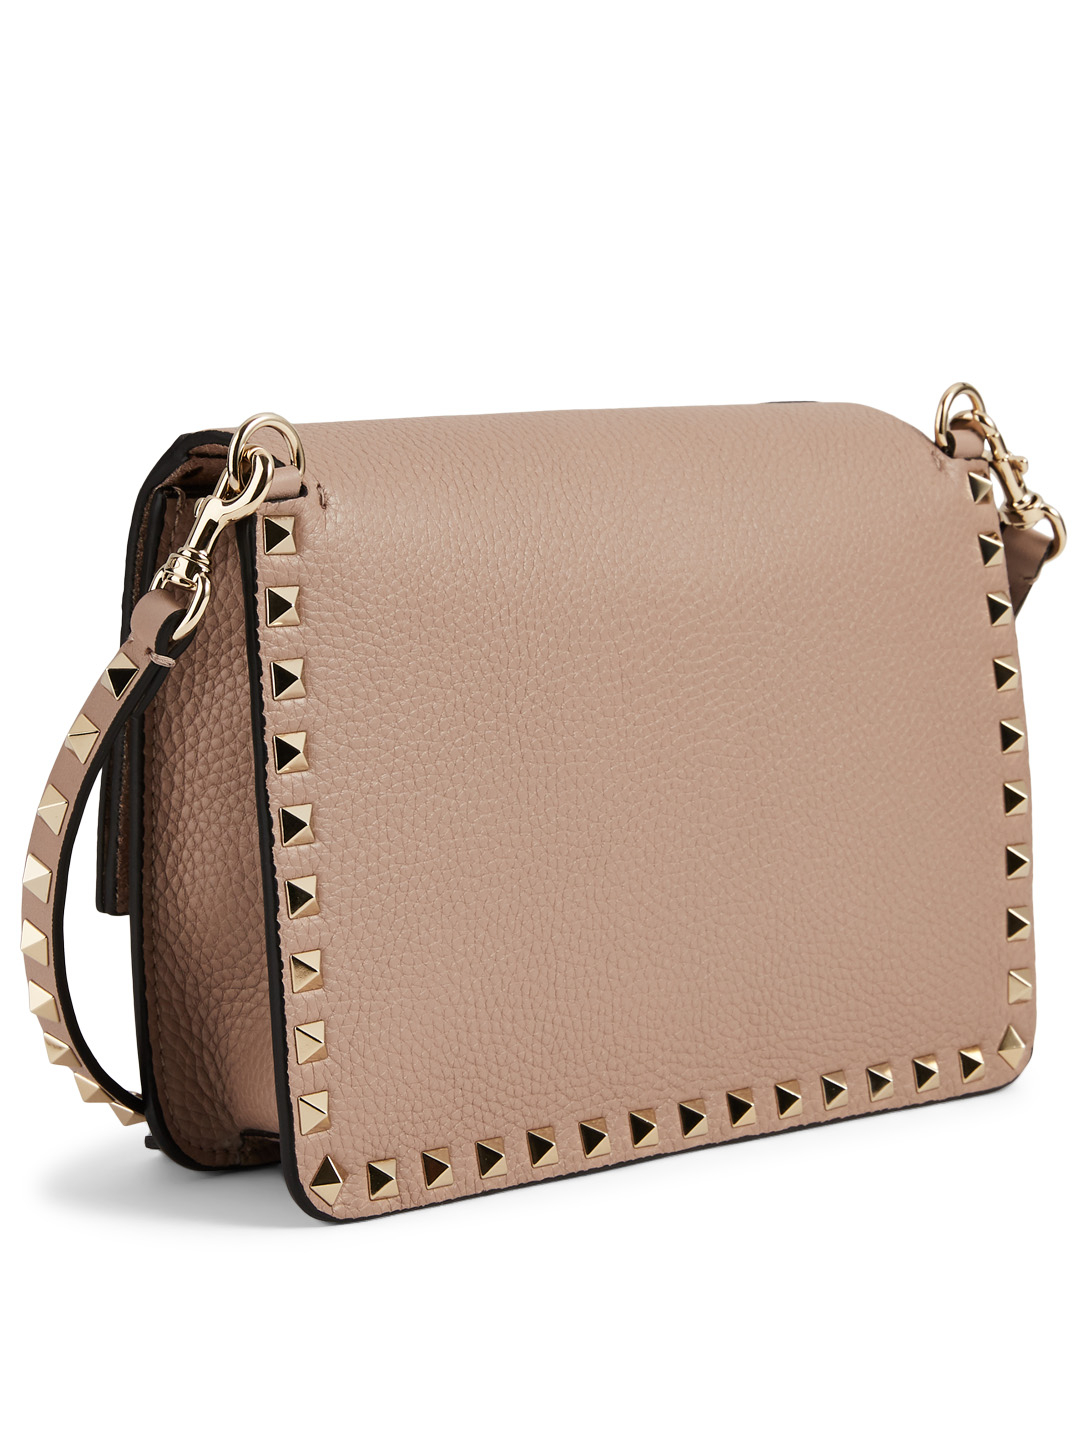 VALENTINO GARAVANI Small Rockstud Leather Bag Women's Pink